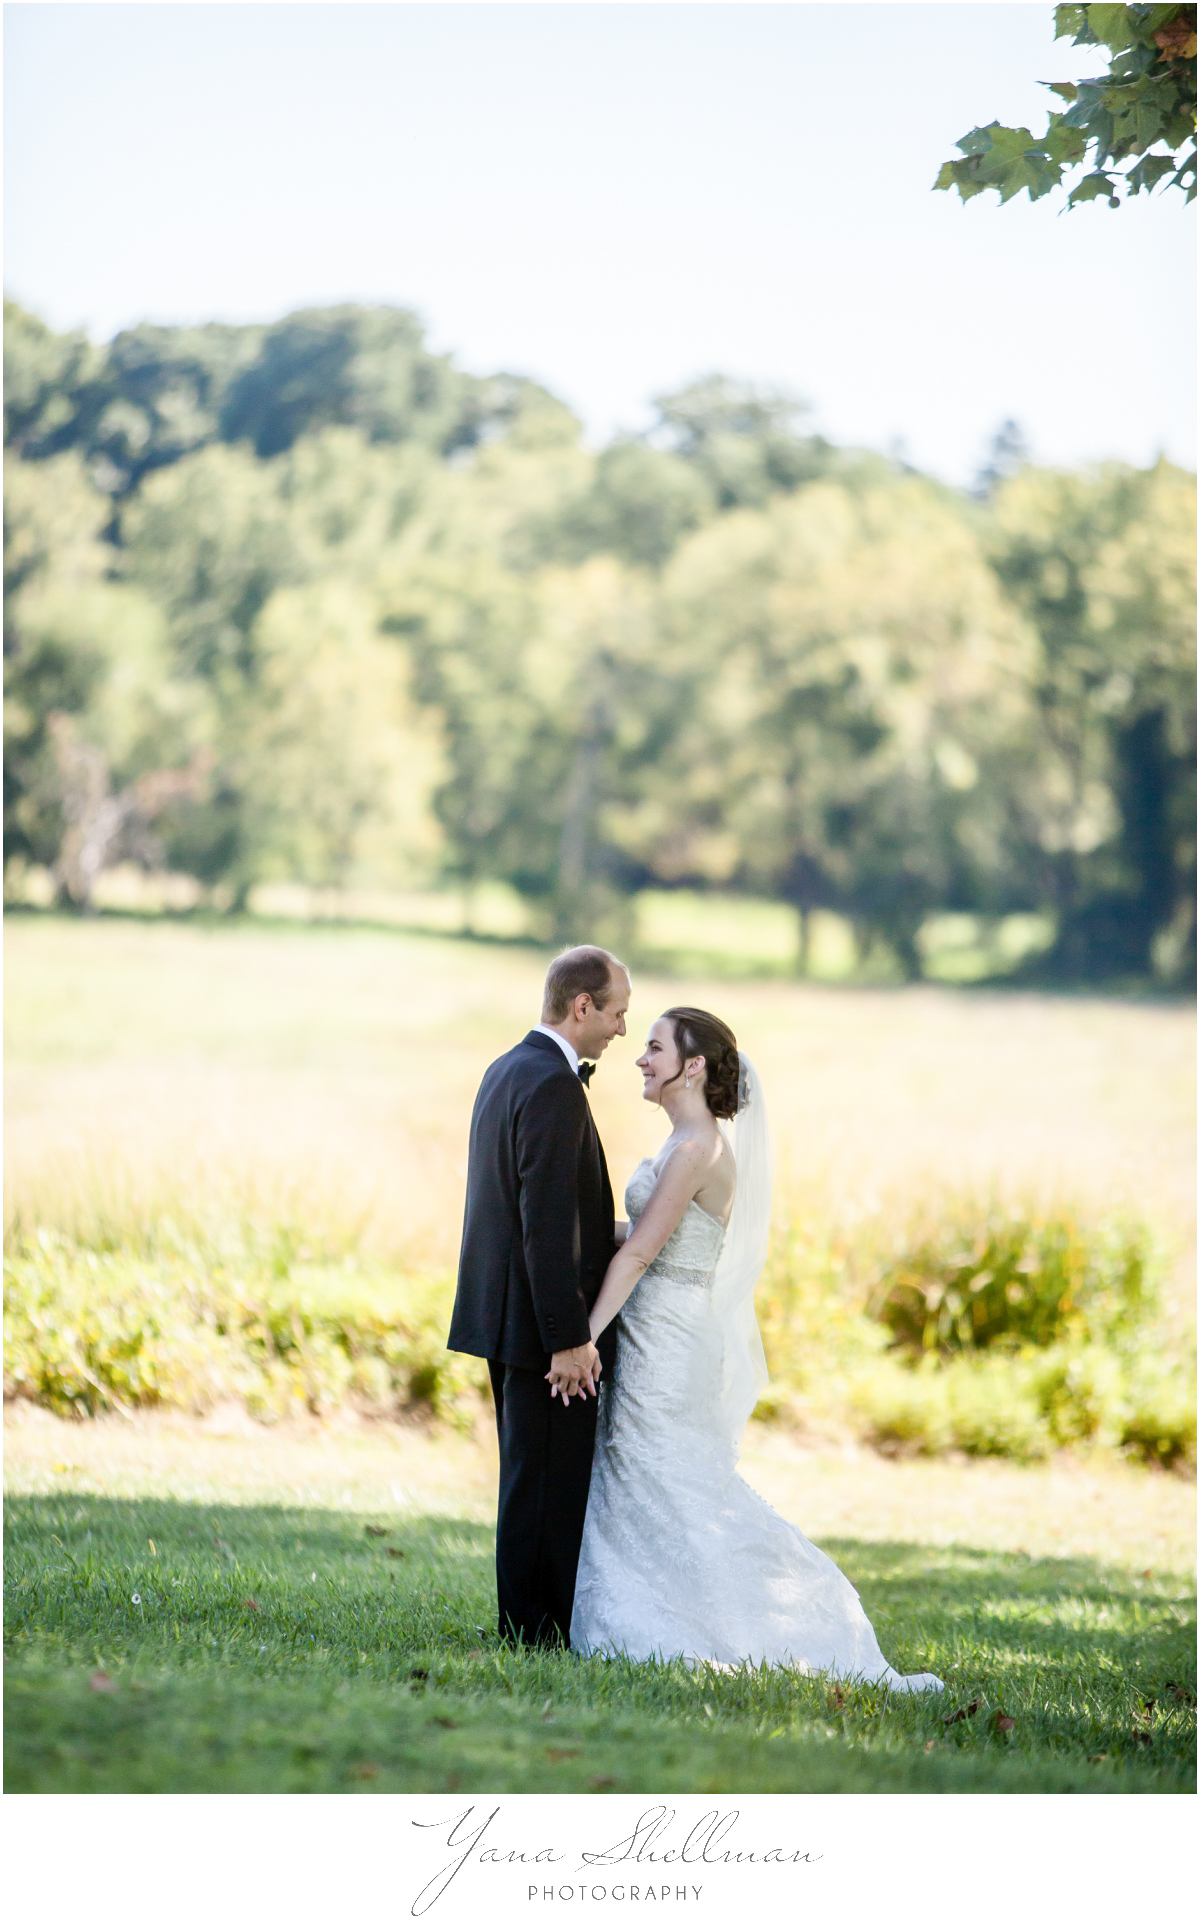 Radnor Valley Country Club Wedding Photos by Medford Wedding Photographer - Alex+Kelli Wedding Photos